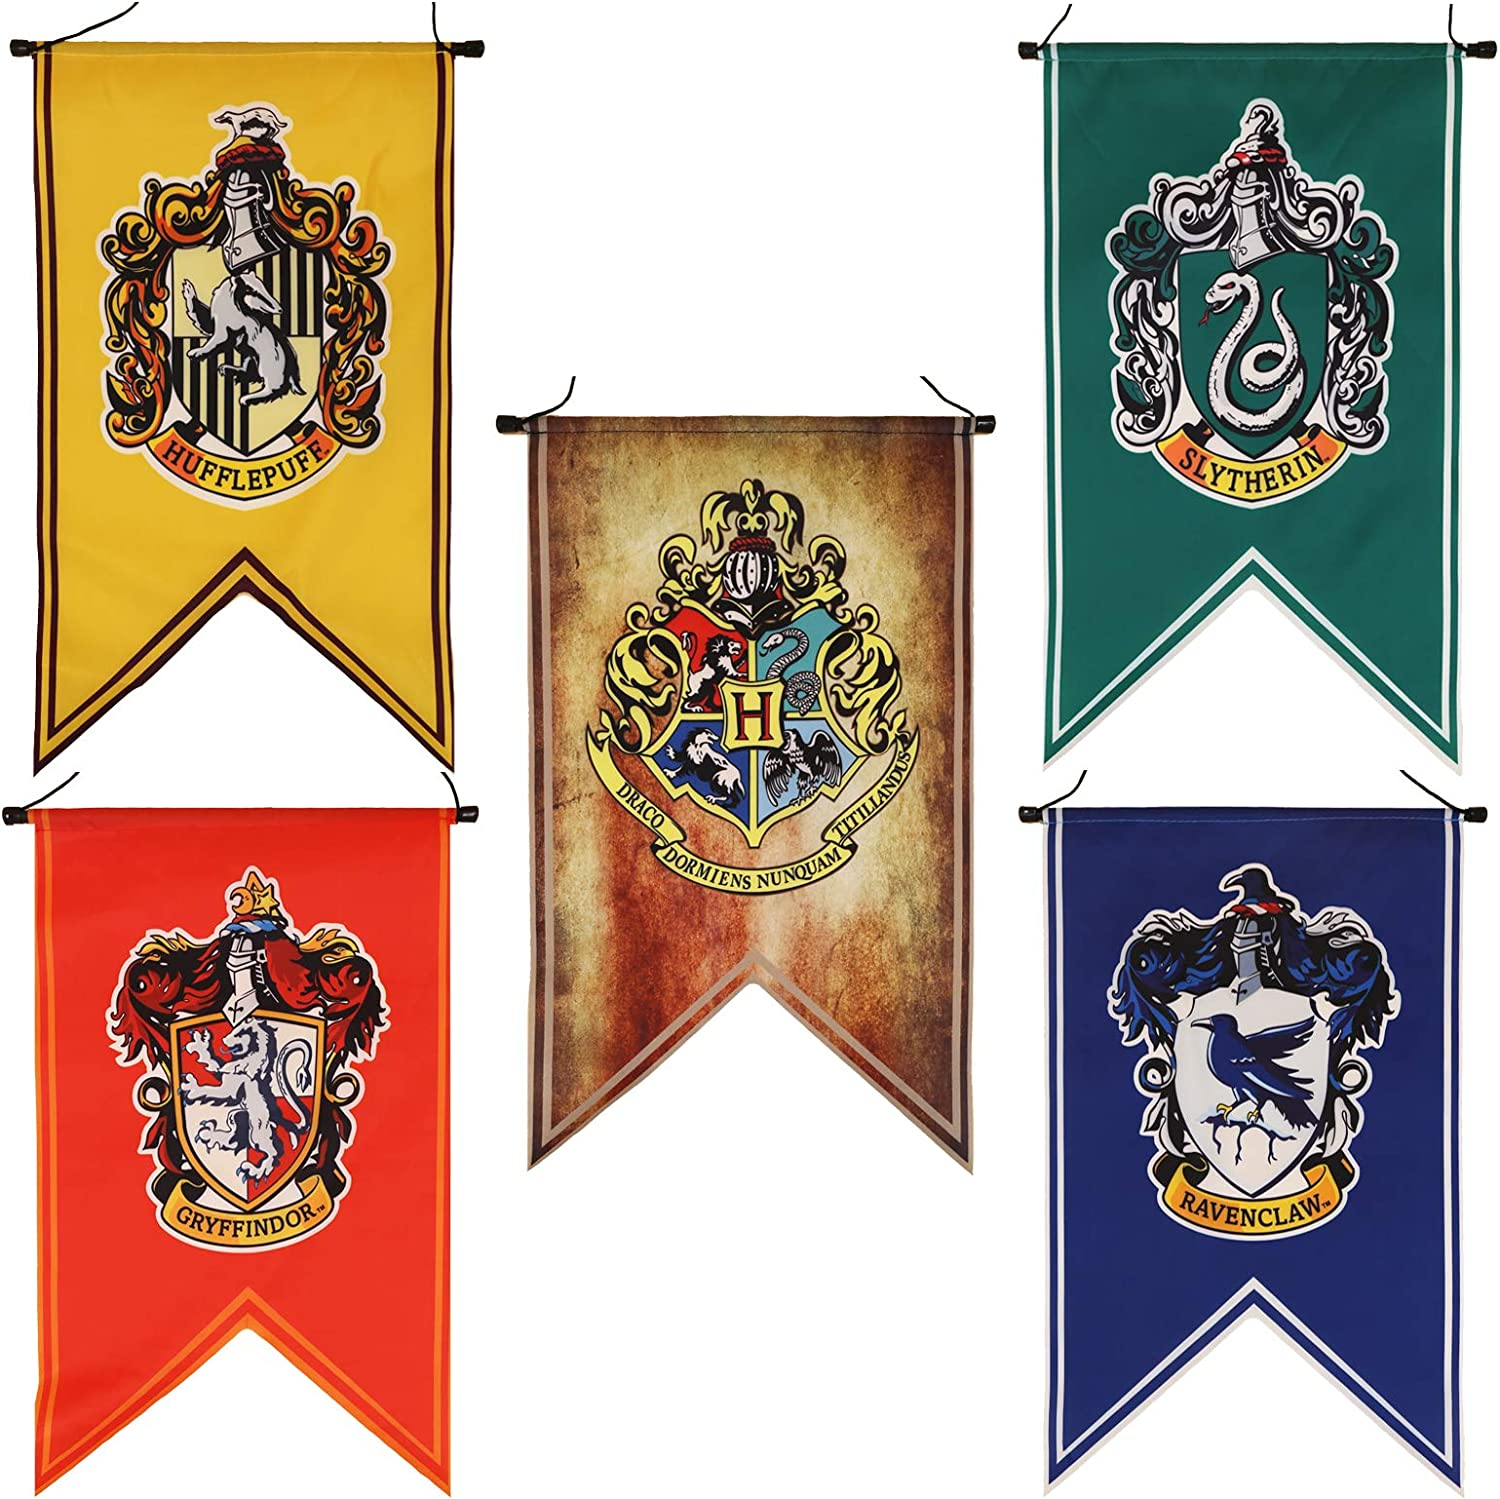 Harry Potter Complete Hogwarts House Wall Banners, Ultra Premium Indoor Outdoor Party Flag - Gryffindor, Slytherin, Hufflepuff, Ravenclaw (20 inches)